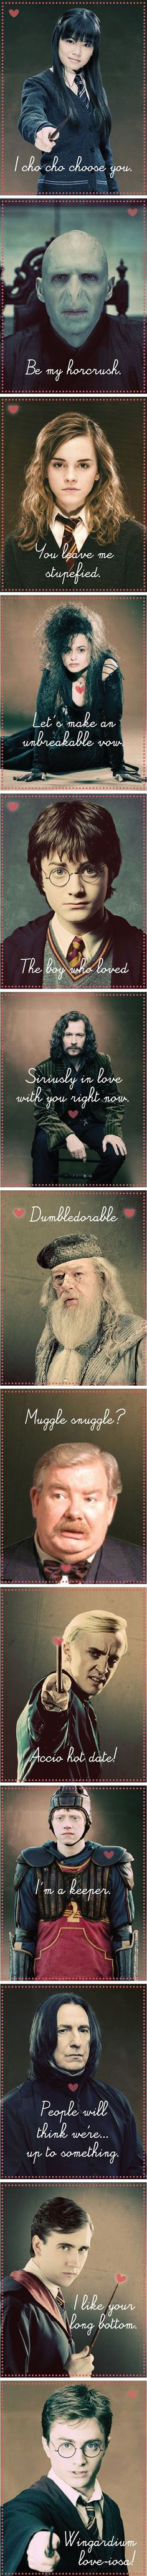 A Very Potter Valentine!: